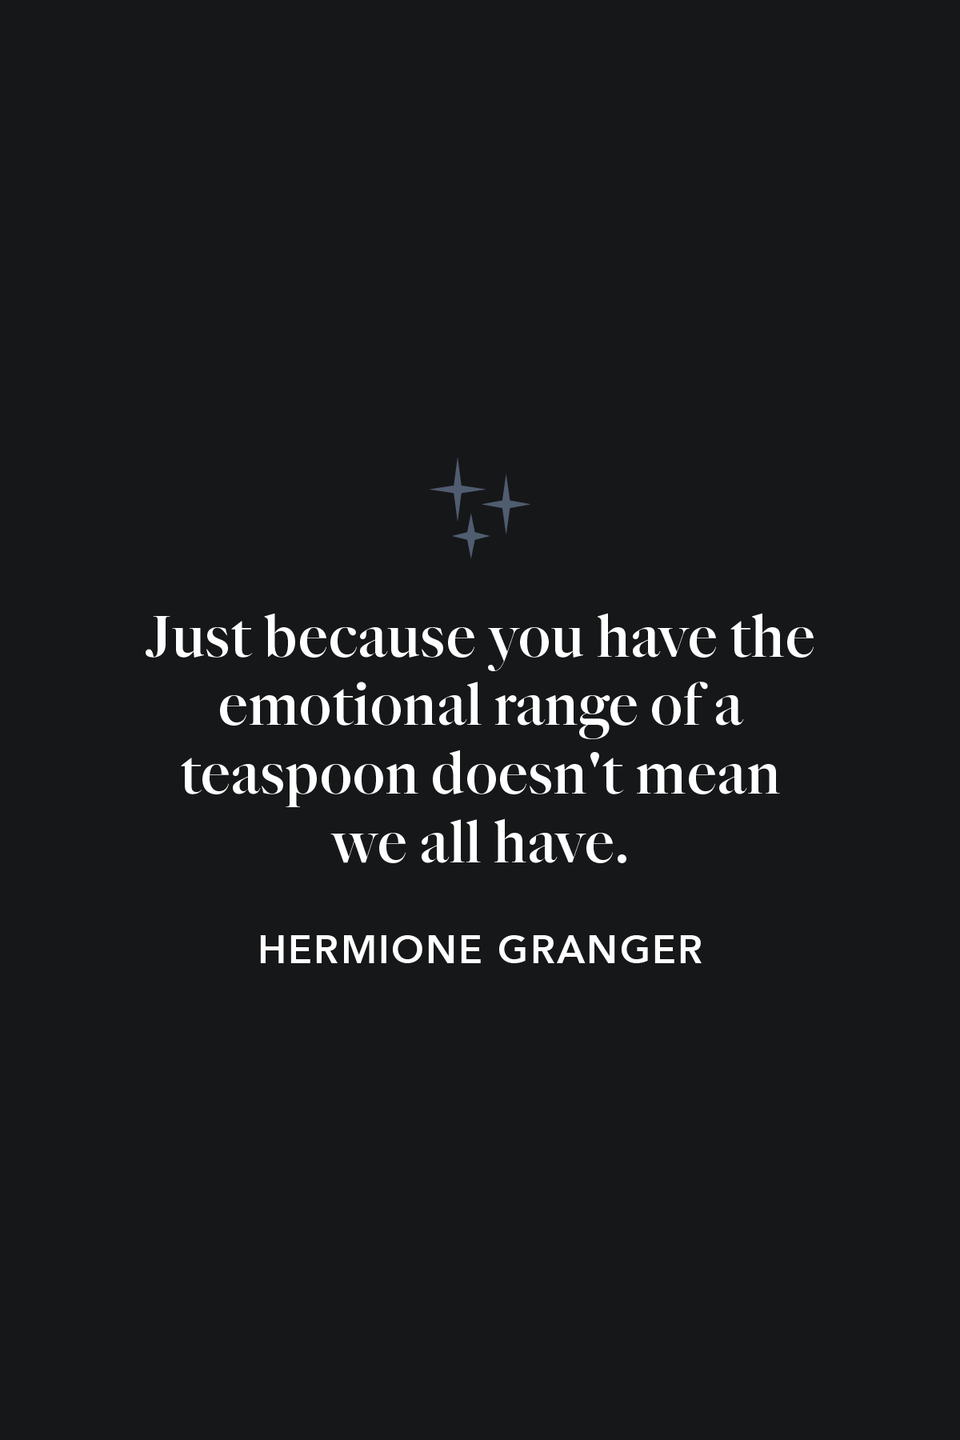 """<p>""""Just because you have the emotional range of a teaspoon doesn't mean we all have,"""" Hermione says to Ron in <em>The Order of the Phoenix</em>'s chapter 21.</p>"""